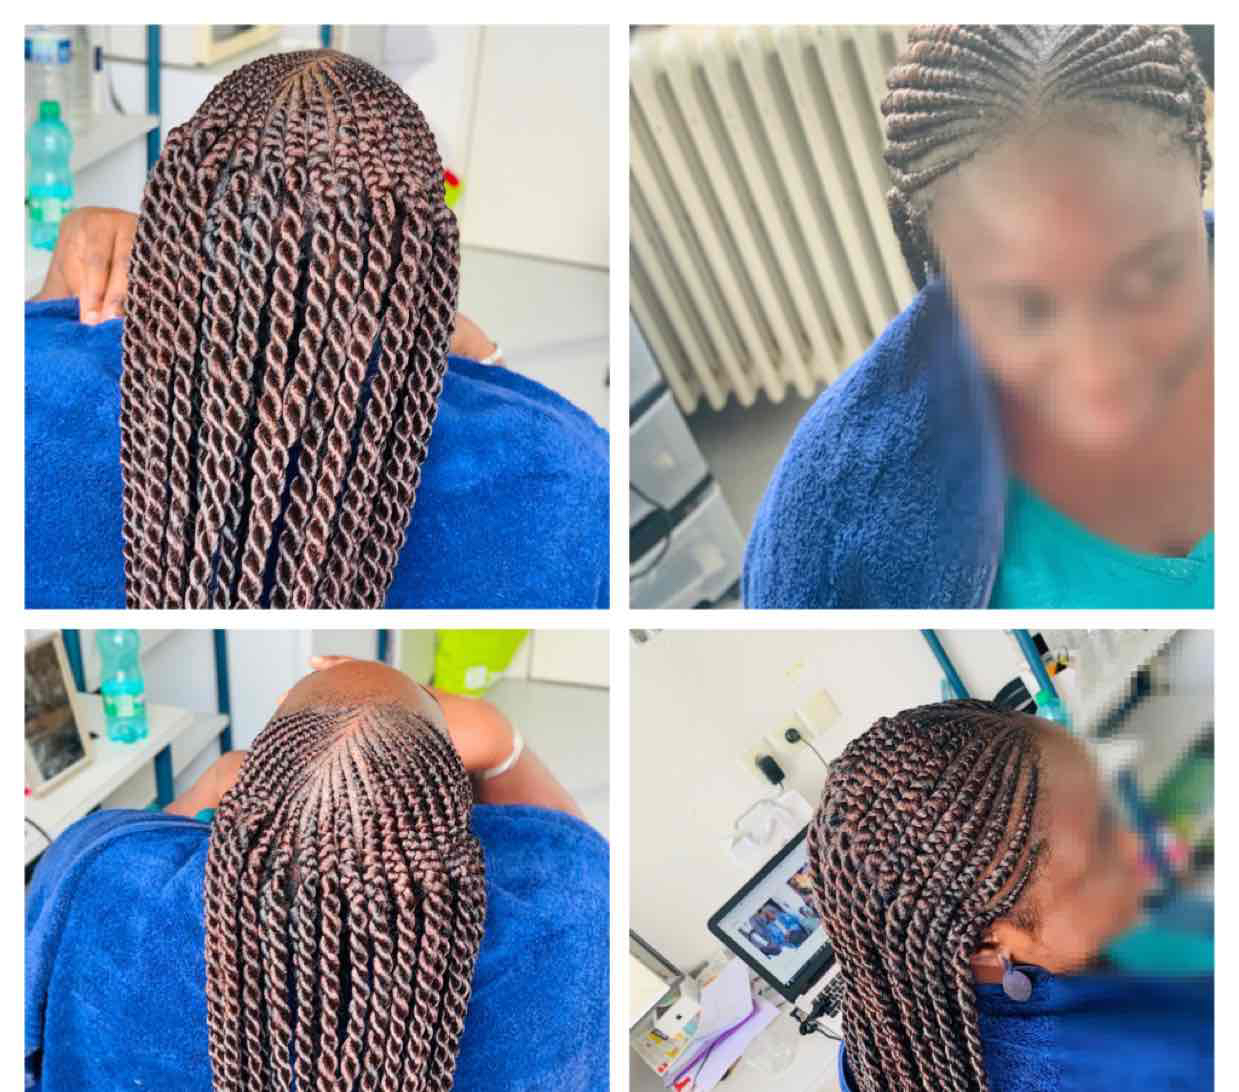 salon de coiffure afro tresse tresses box braids crochet braids vanilles tissages paris 75 77 78 91 92 93 94 95 BSYBYNSY